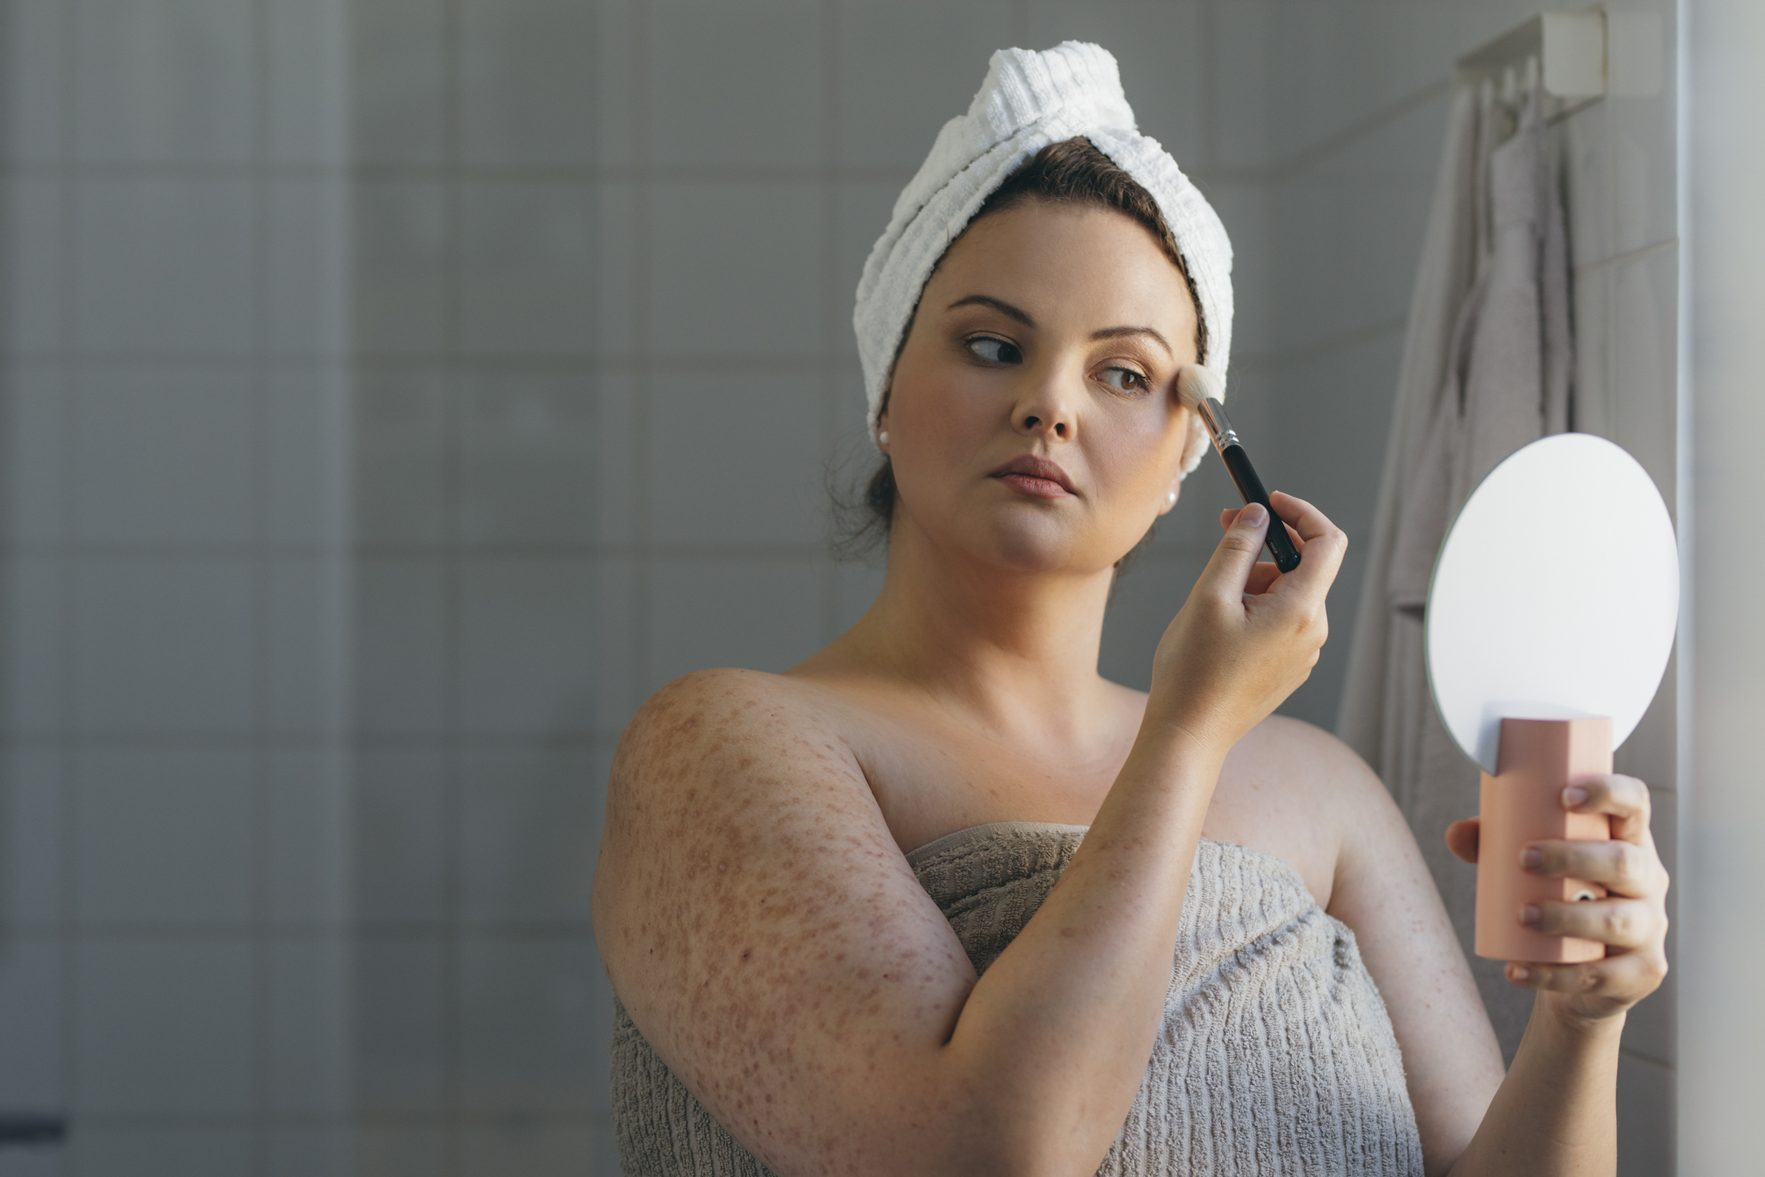 Beautiful Plus Size Woman, Wrapped in a Towel, Applying Makeup onto her Face in the Morning